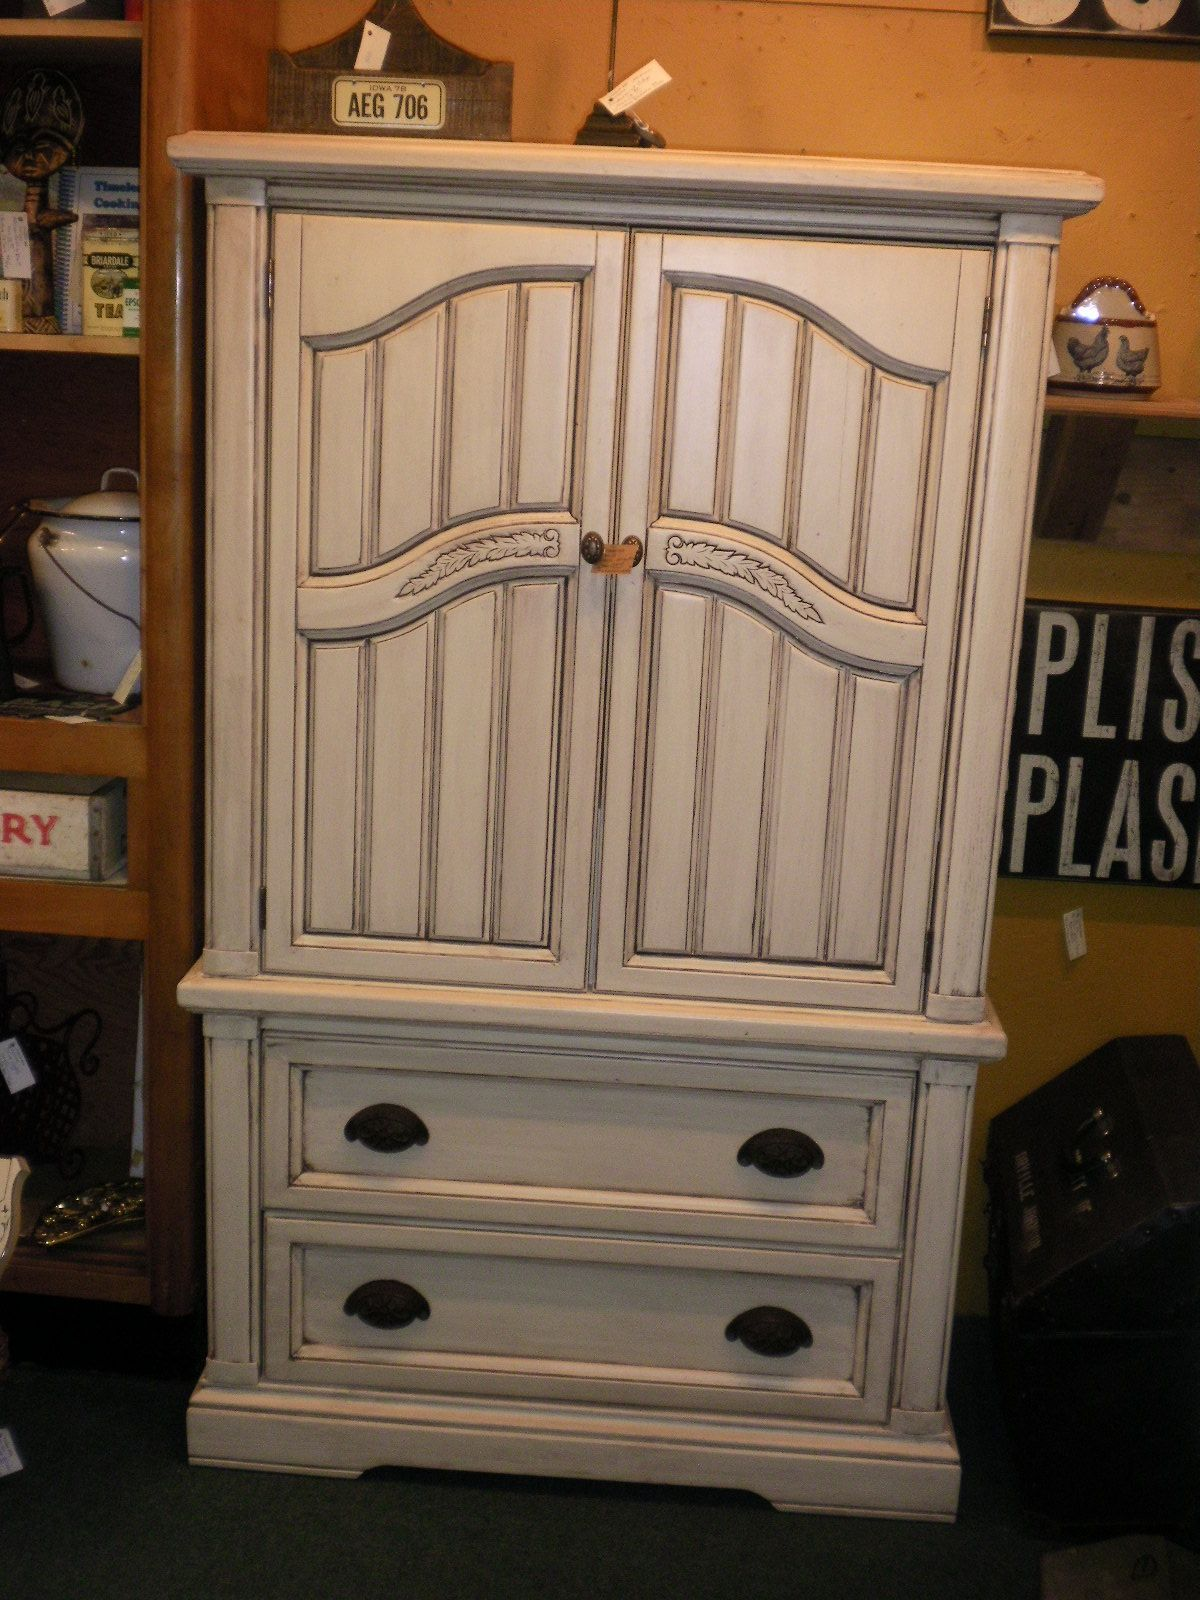 Armoire painted Antique White with brown glaze. I